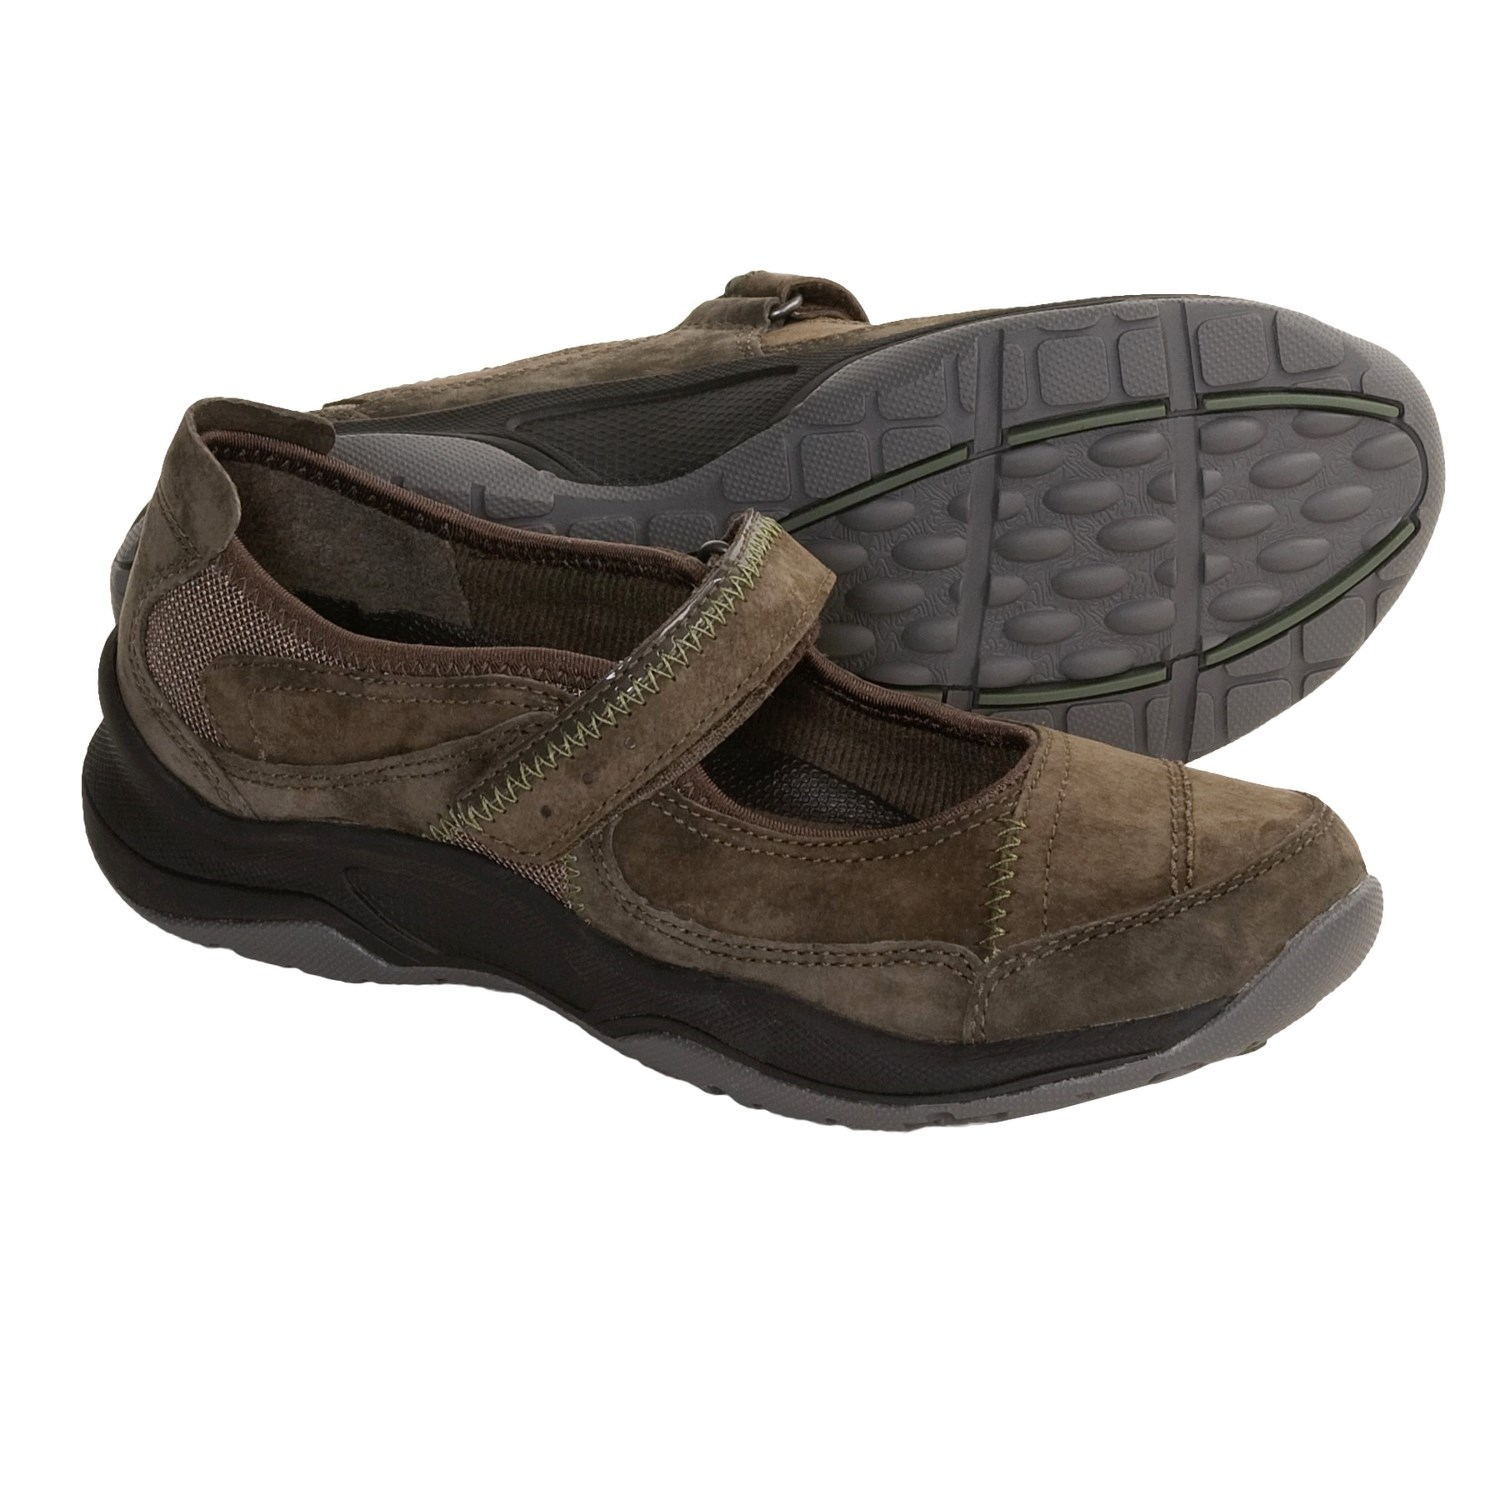 Cheap Softwalk Shoes Clearance, find Softwalk Shoes Clearance